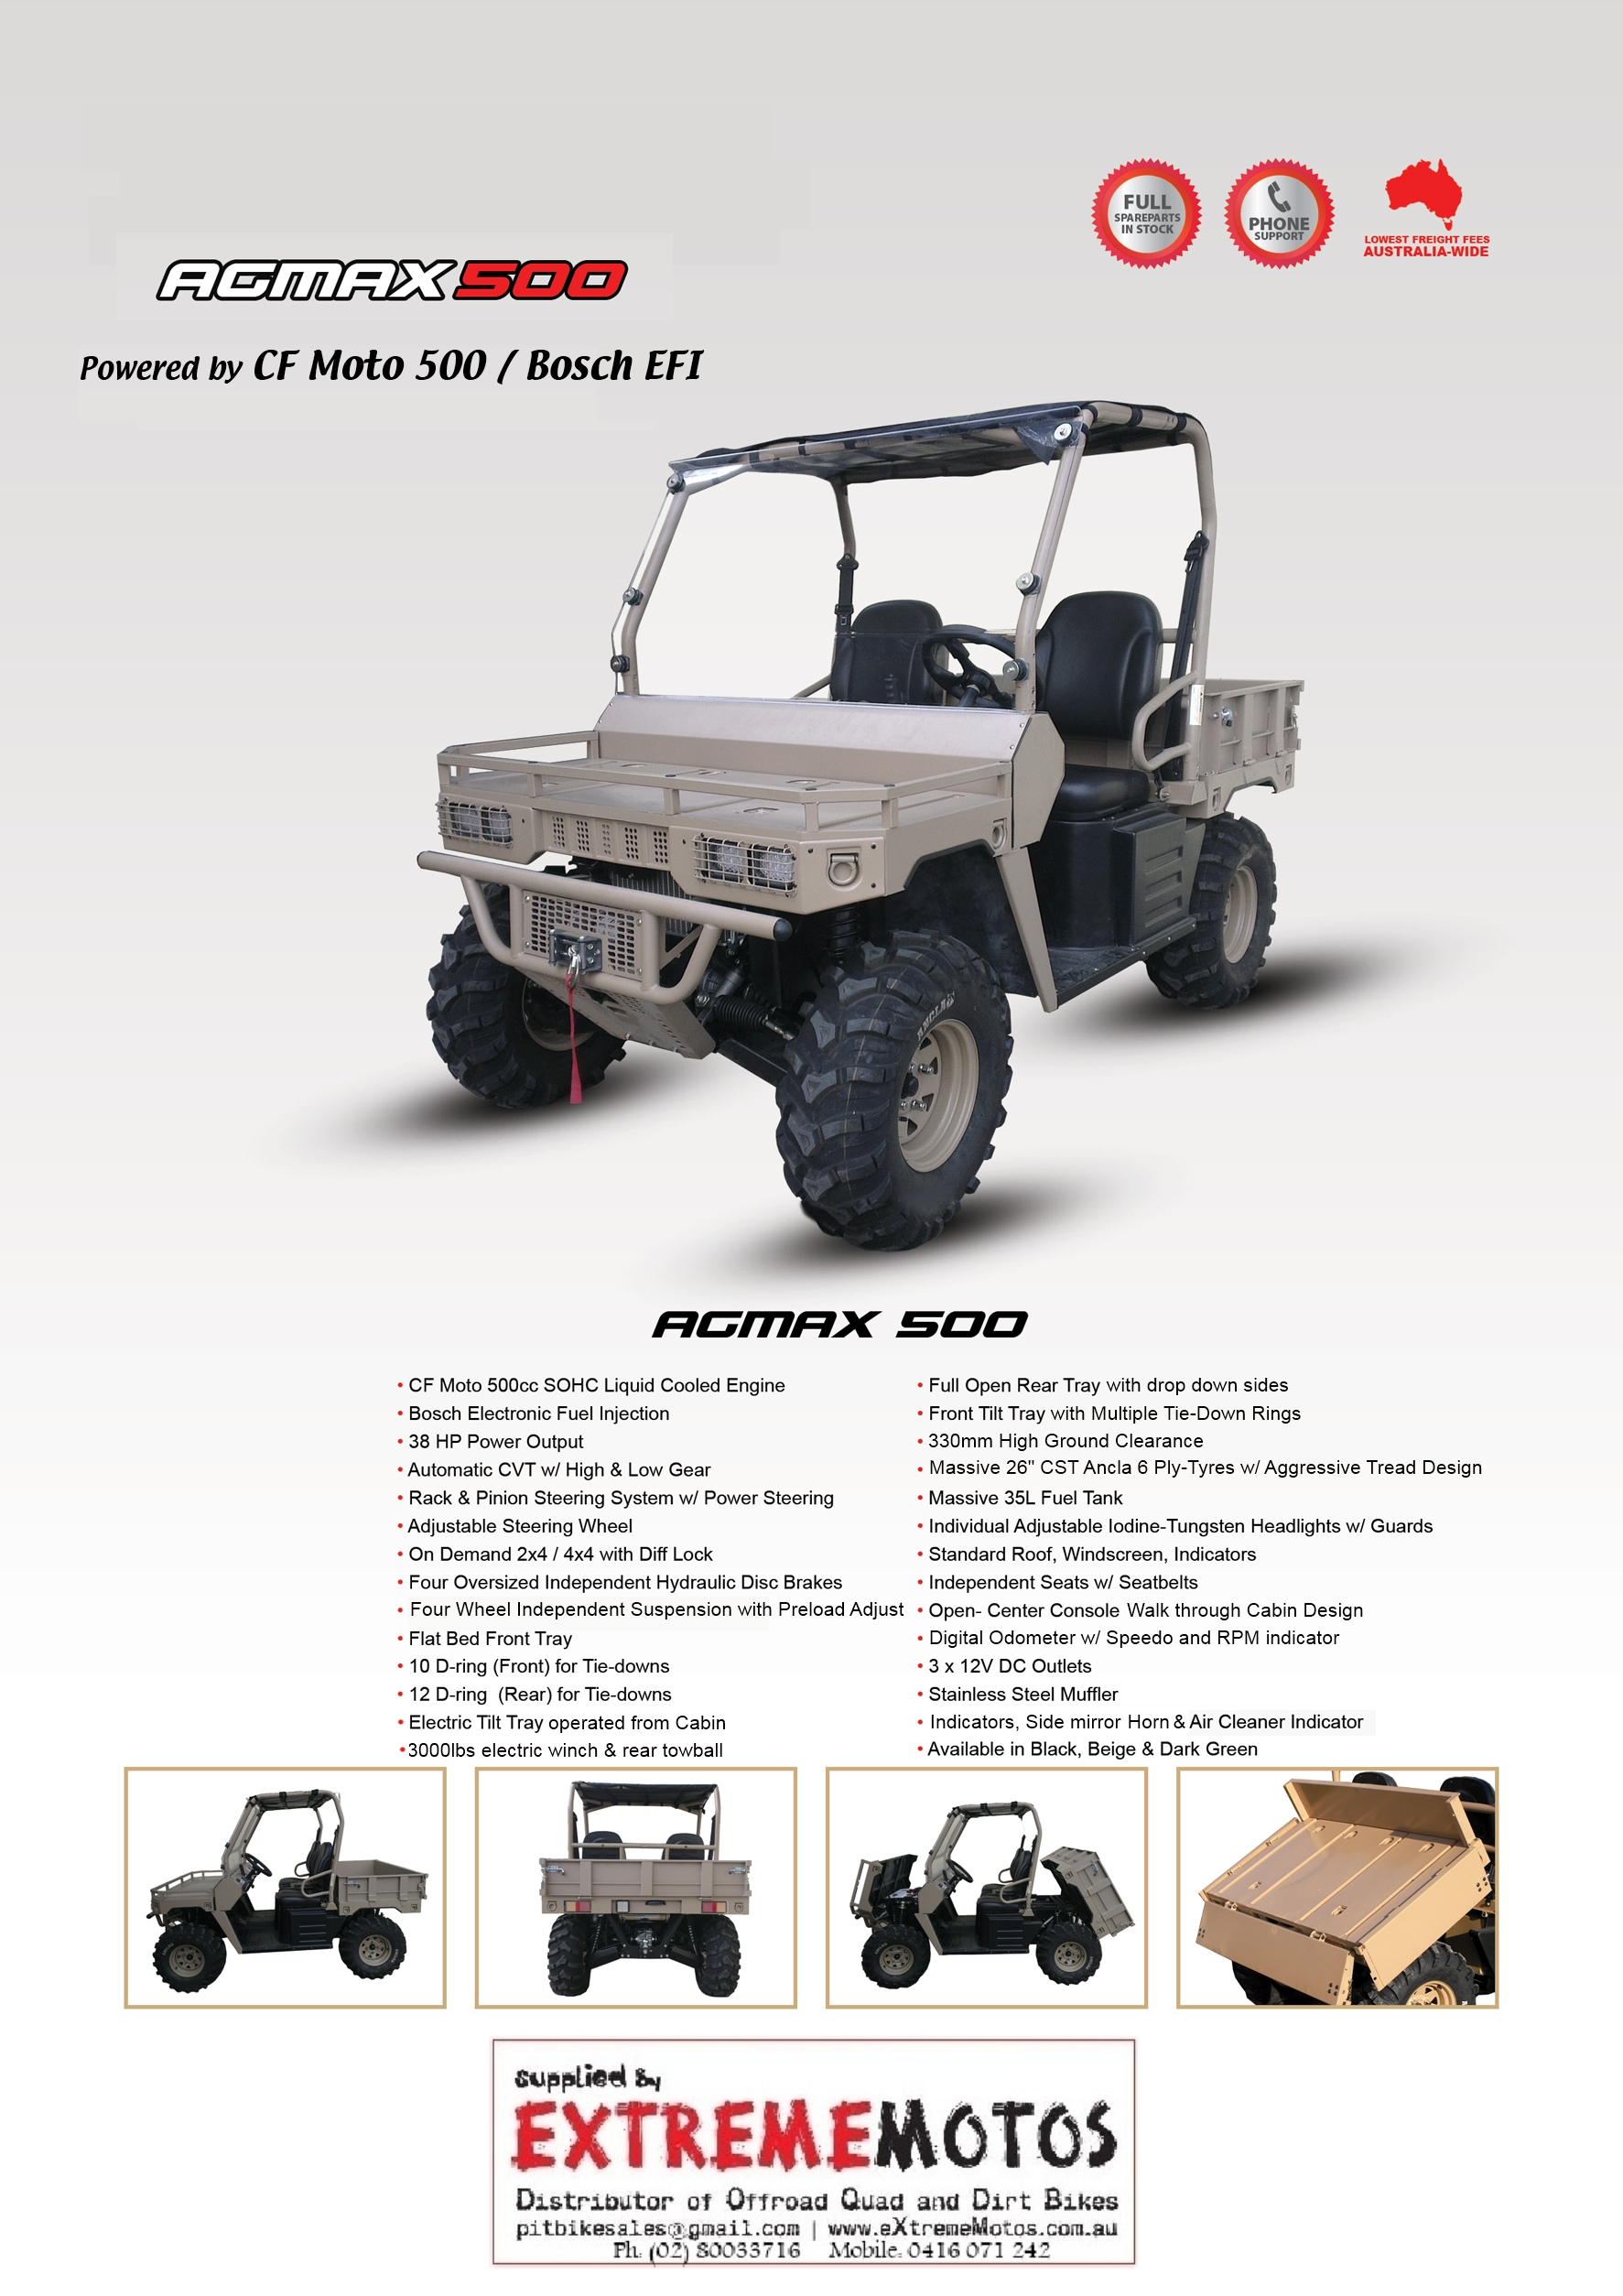 800cc 600cc 500cc Agmax Military 4x4 Utv 4wd Farm Utility Vehicle Cf Moto 500 Wiring Diagram Download Printable Spec Sheet